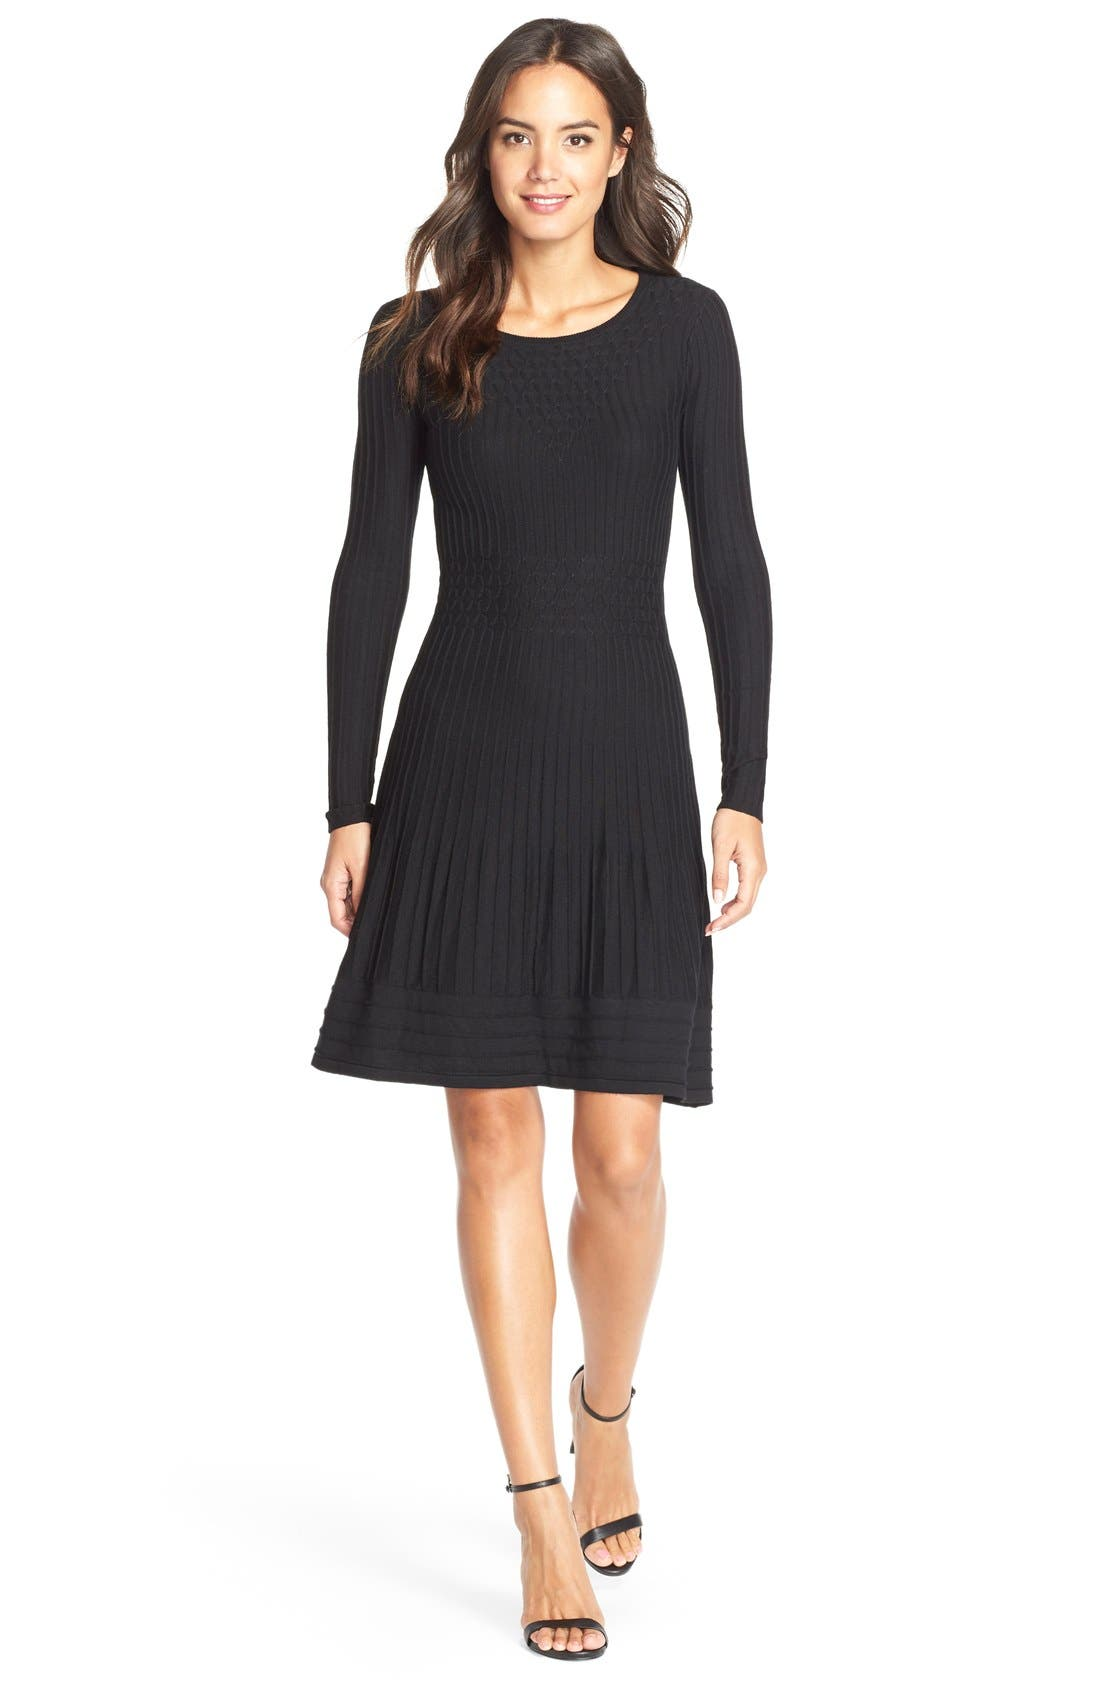 Alternate Image 1 Selected - Adrianna Papell Sweater Fit & Flare Dress